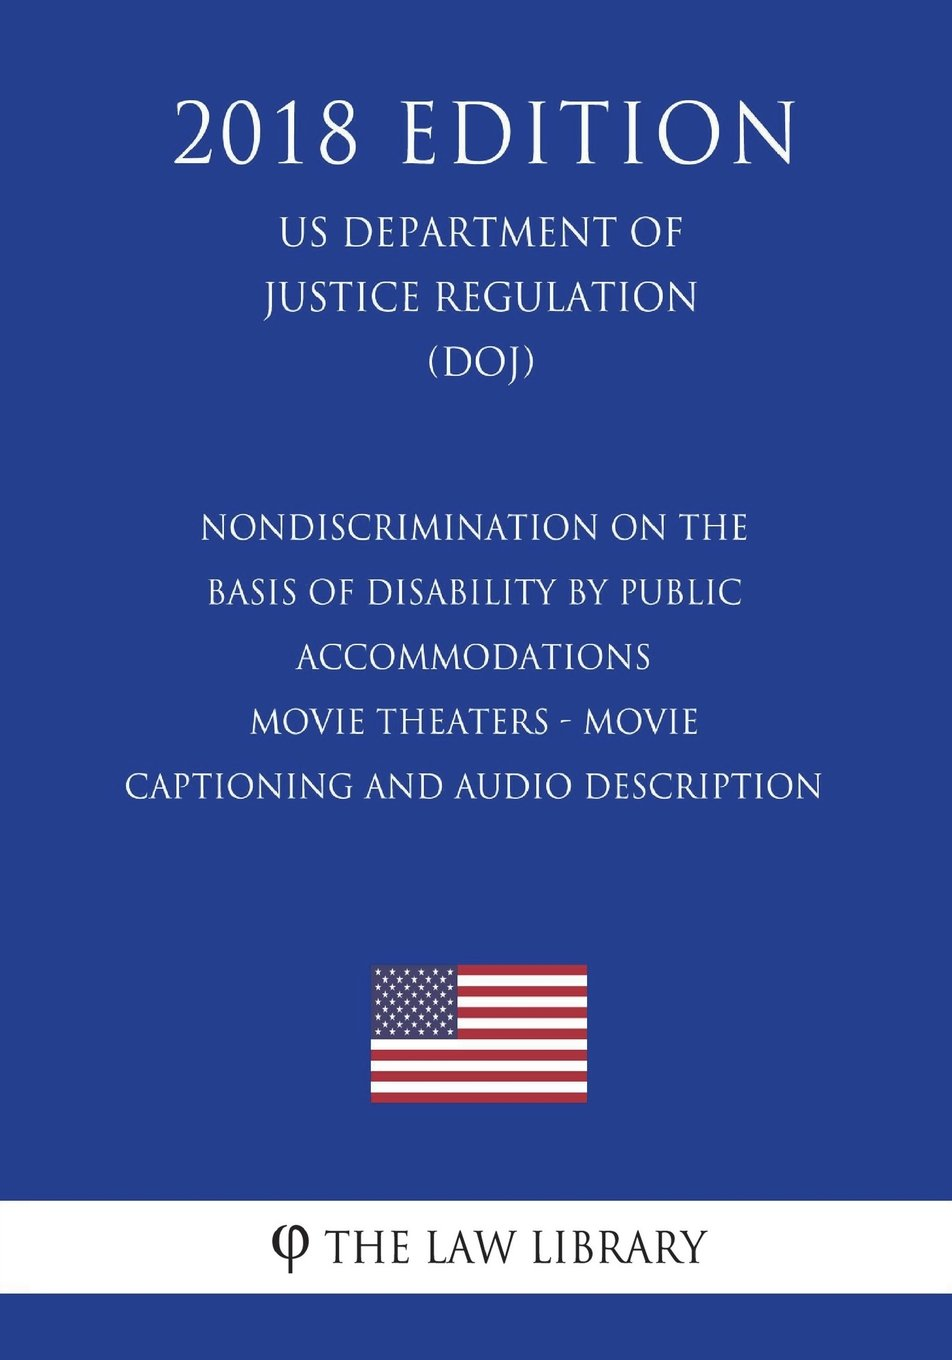 Download Nondiscrimination on the Basis of Disability by Public Accommodations - Movie Theaters - Movie Captioning and Audio Description (US Department of Justice Regulation) (DOJ) (2018 Edition) PDF